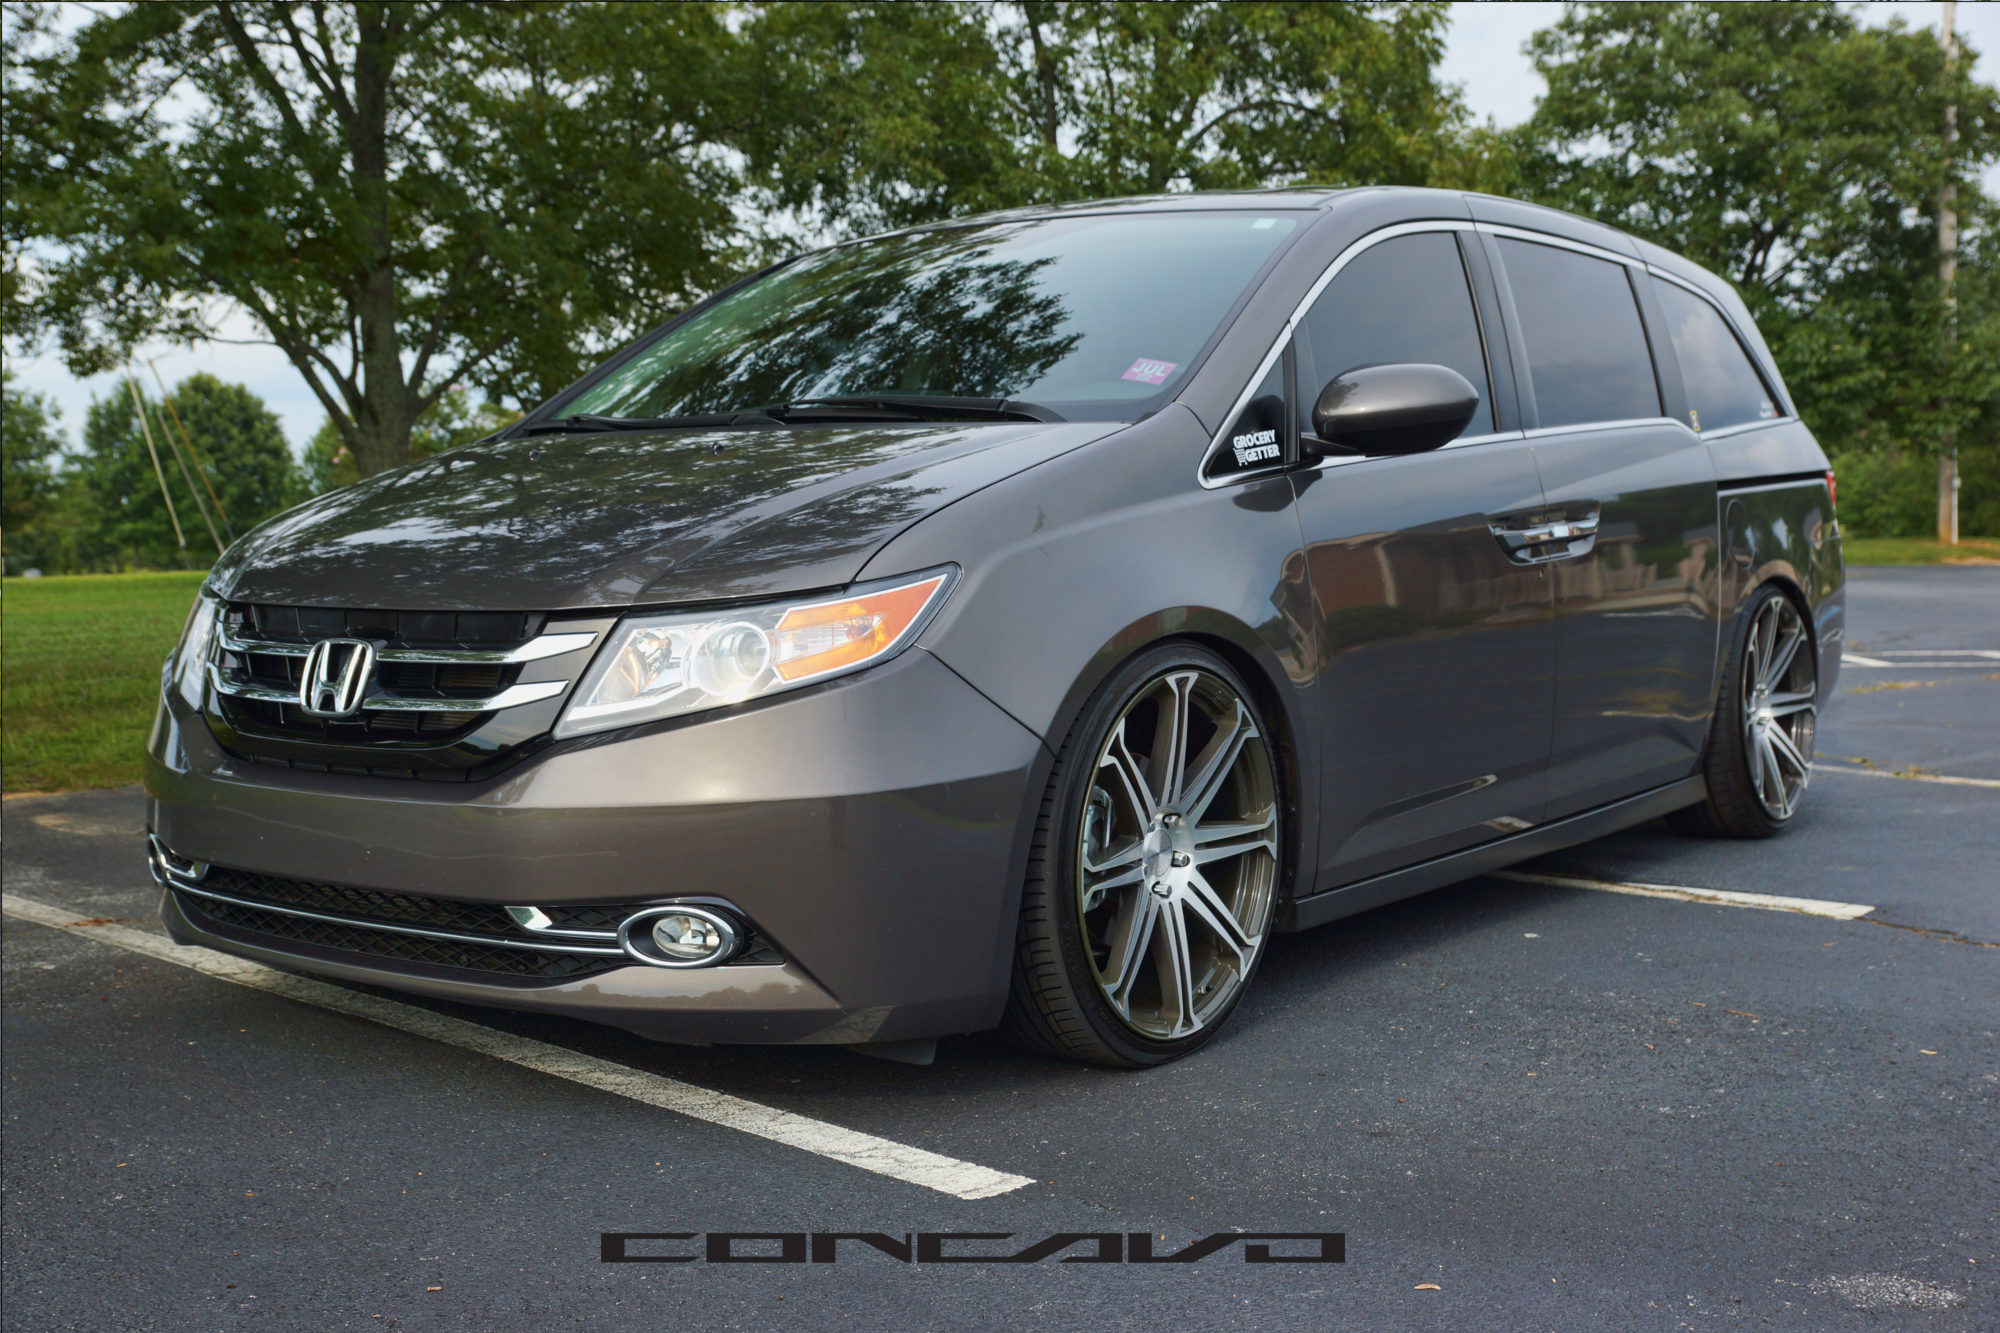 Honda Odyssey on 20″ CW-S8 – Concavo Wheels